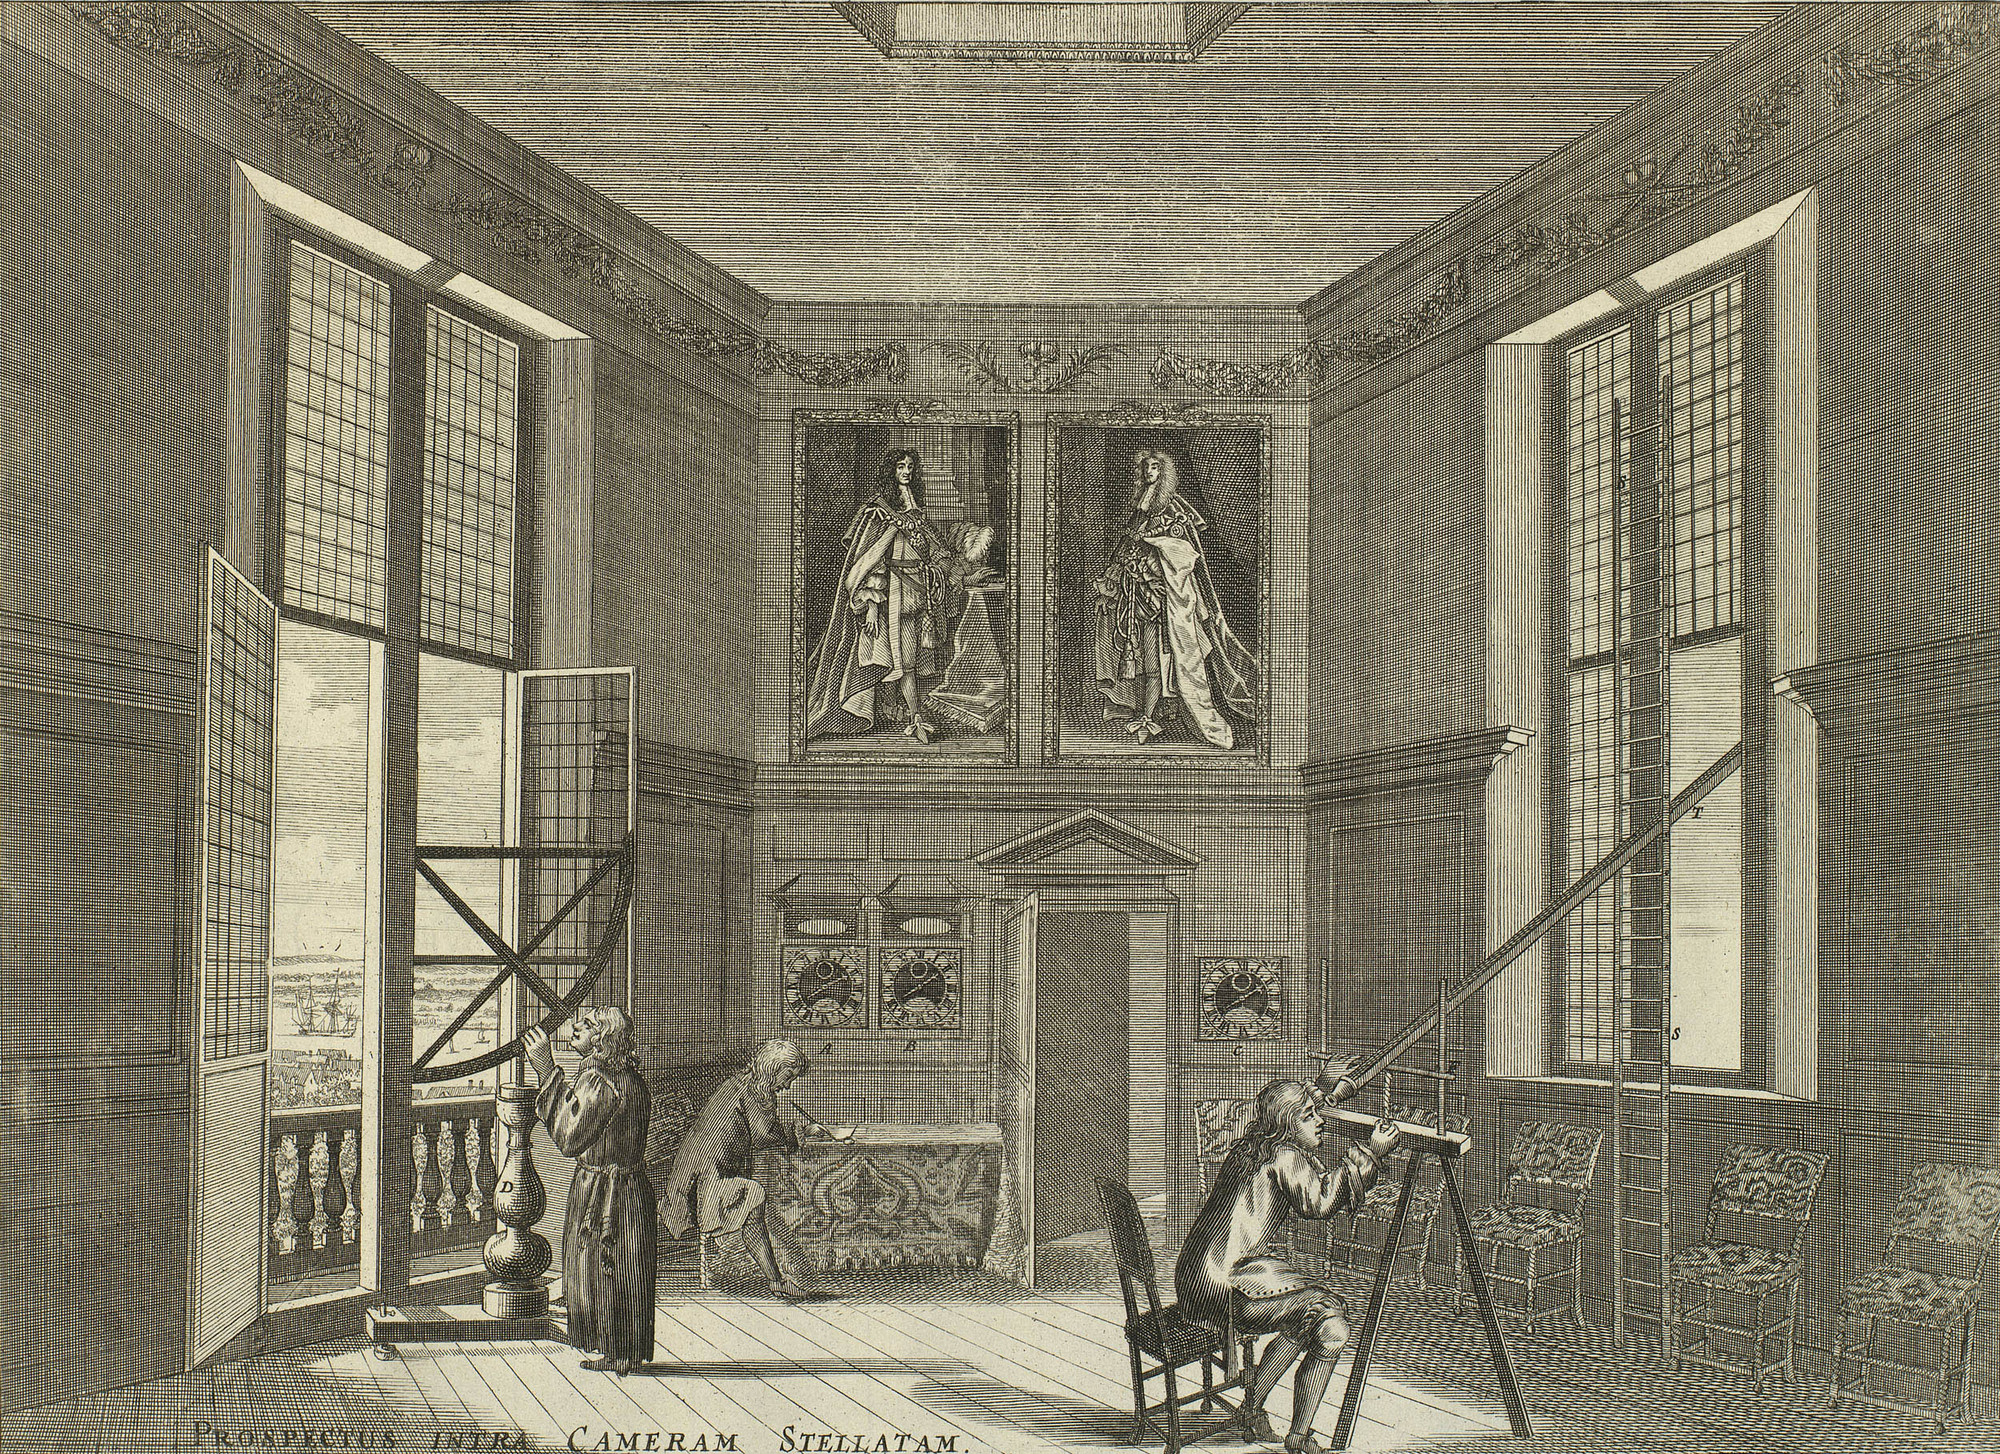 Robert Thacker, Prospectus Intra Cameram Stellatam, 1676, showing astronomers at work in the Royal Observatory